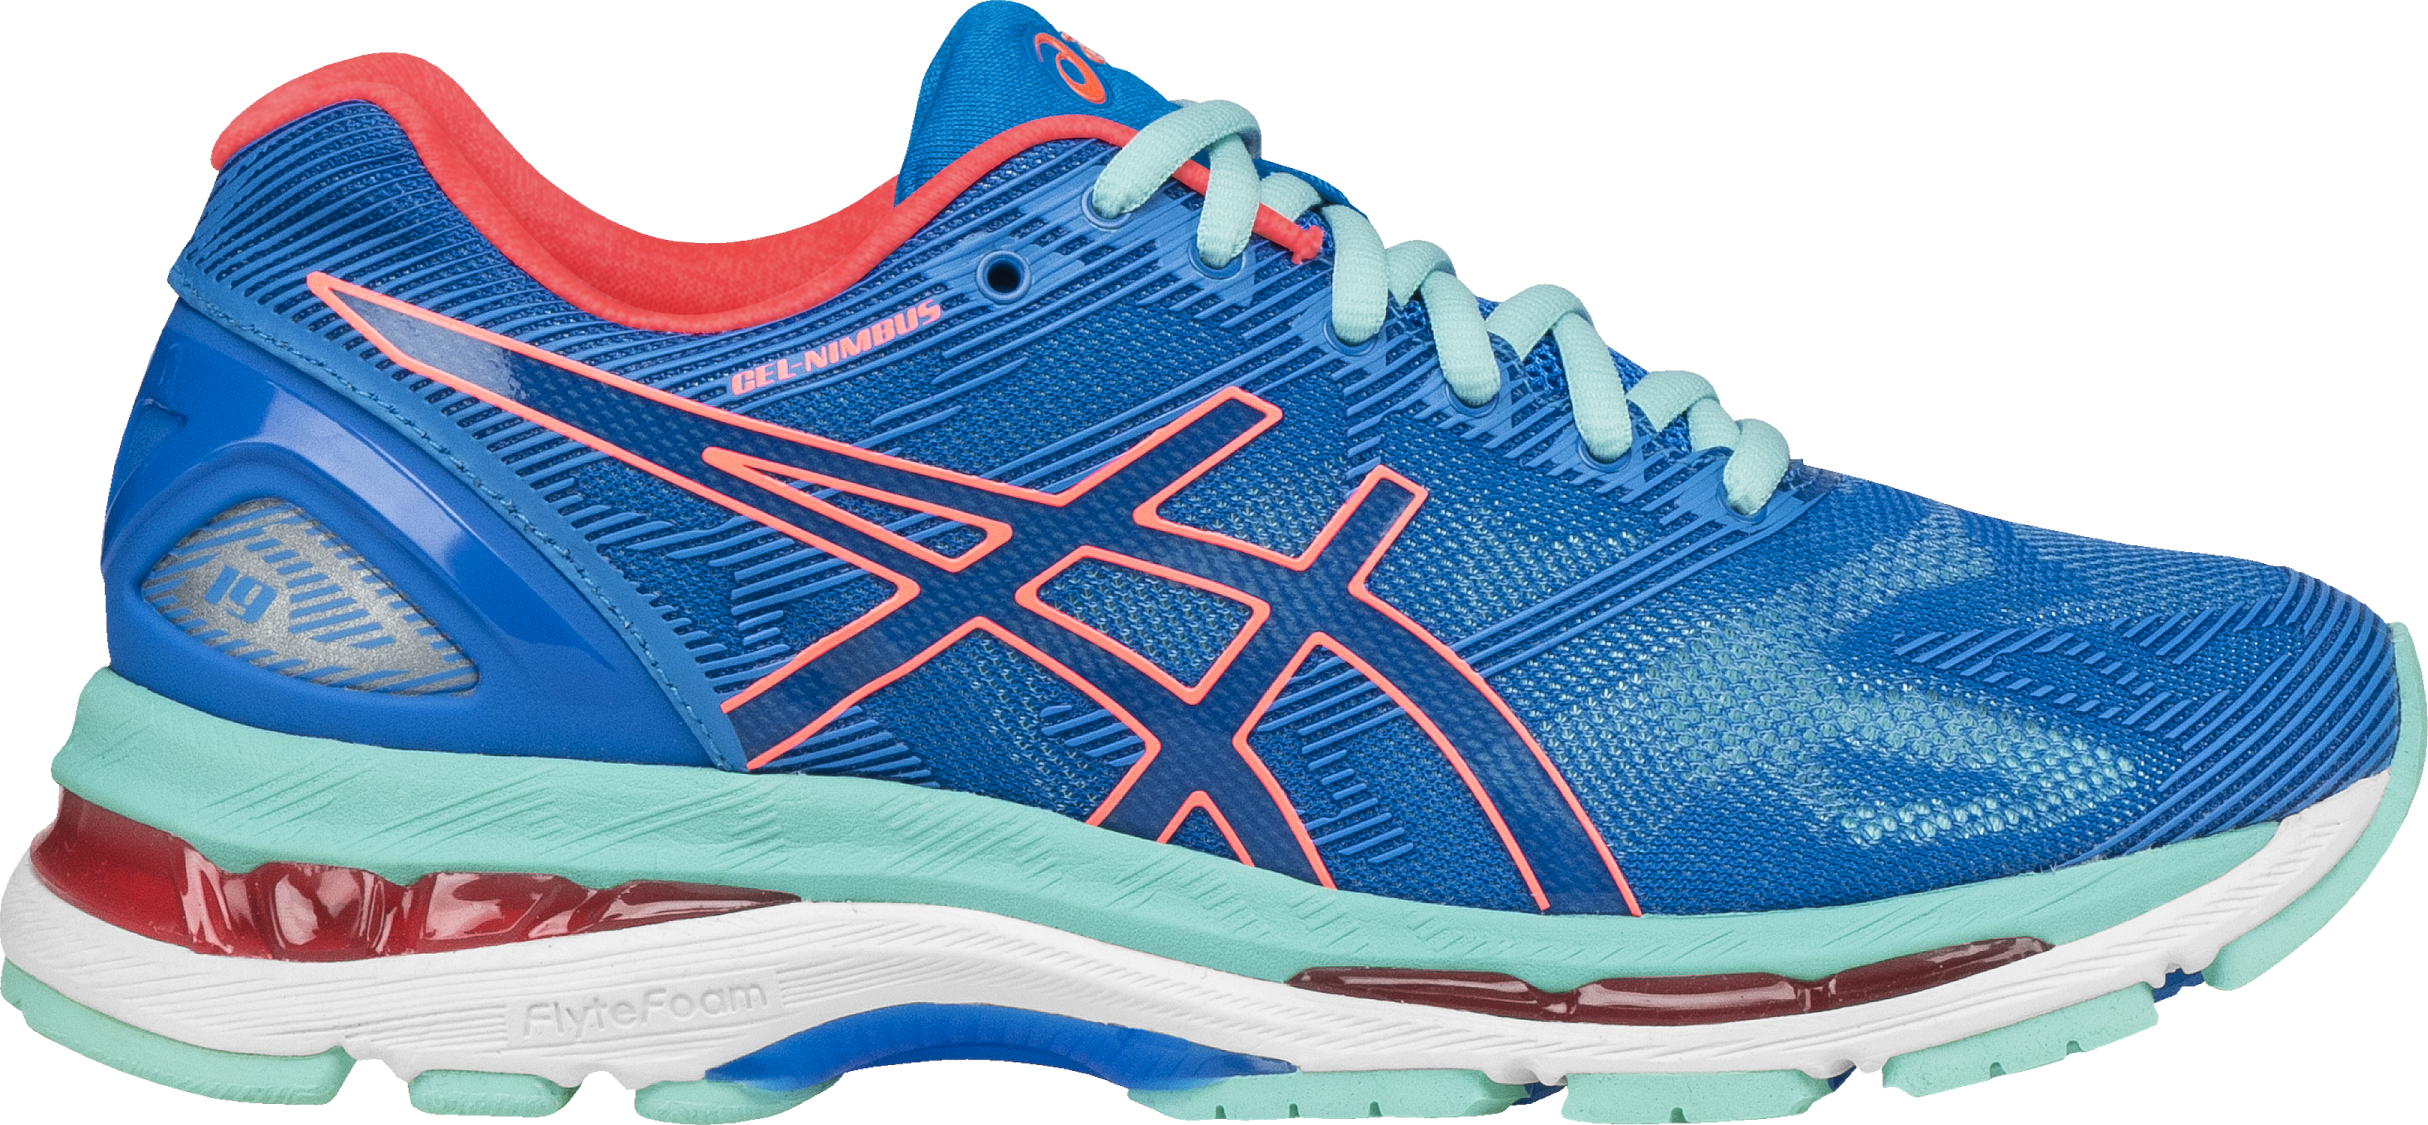 new style 390a2 c374e ASICS Global - The Official Corporate Website for ASICS and ...